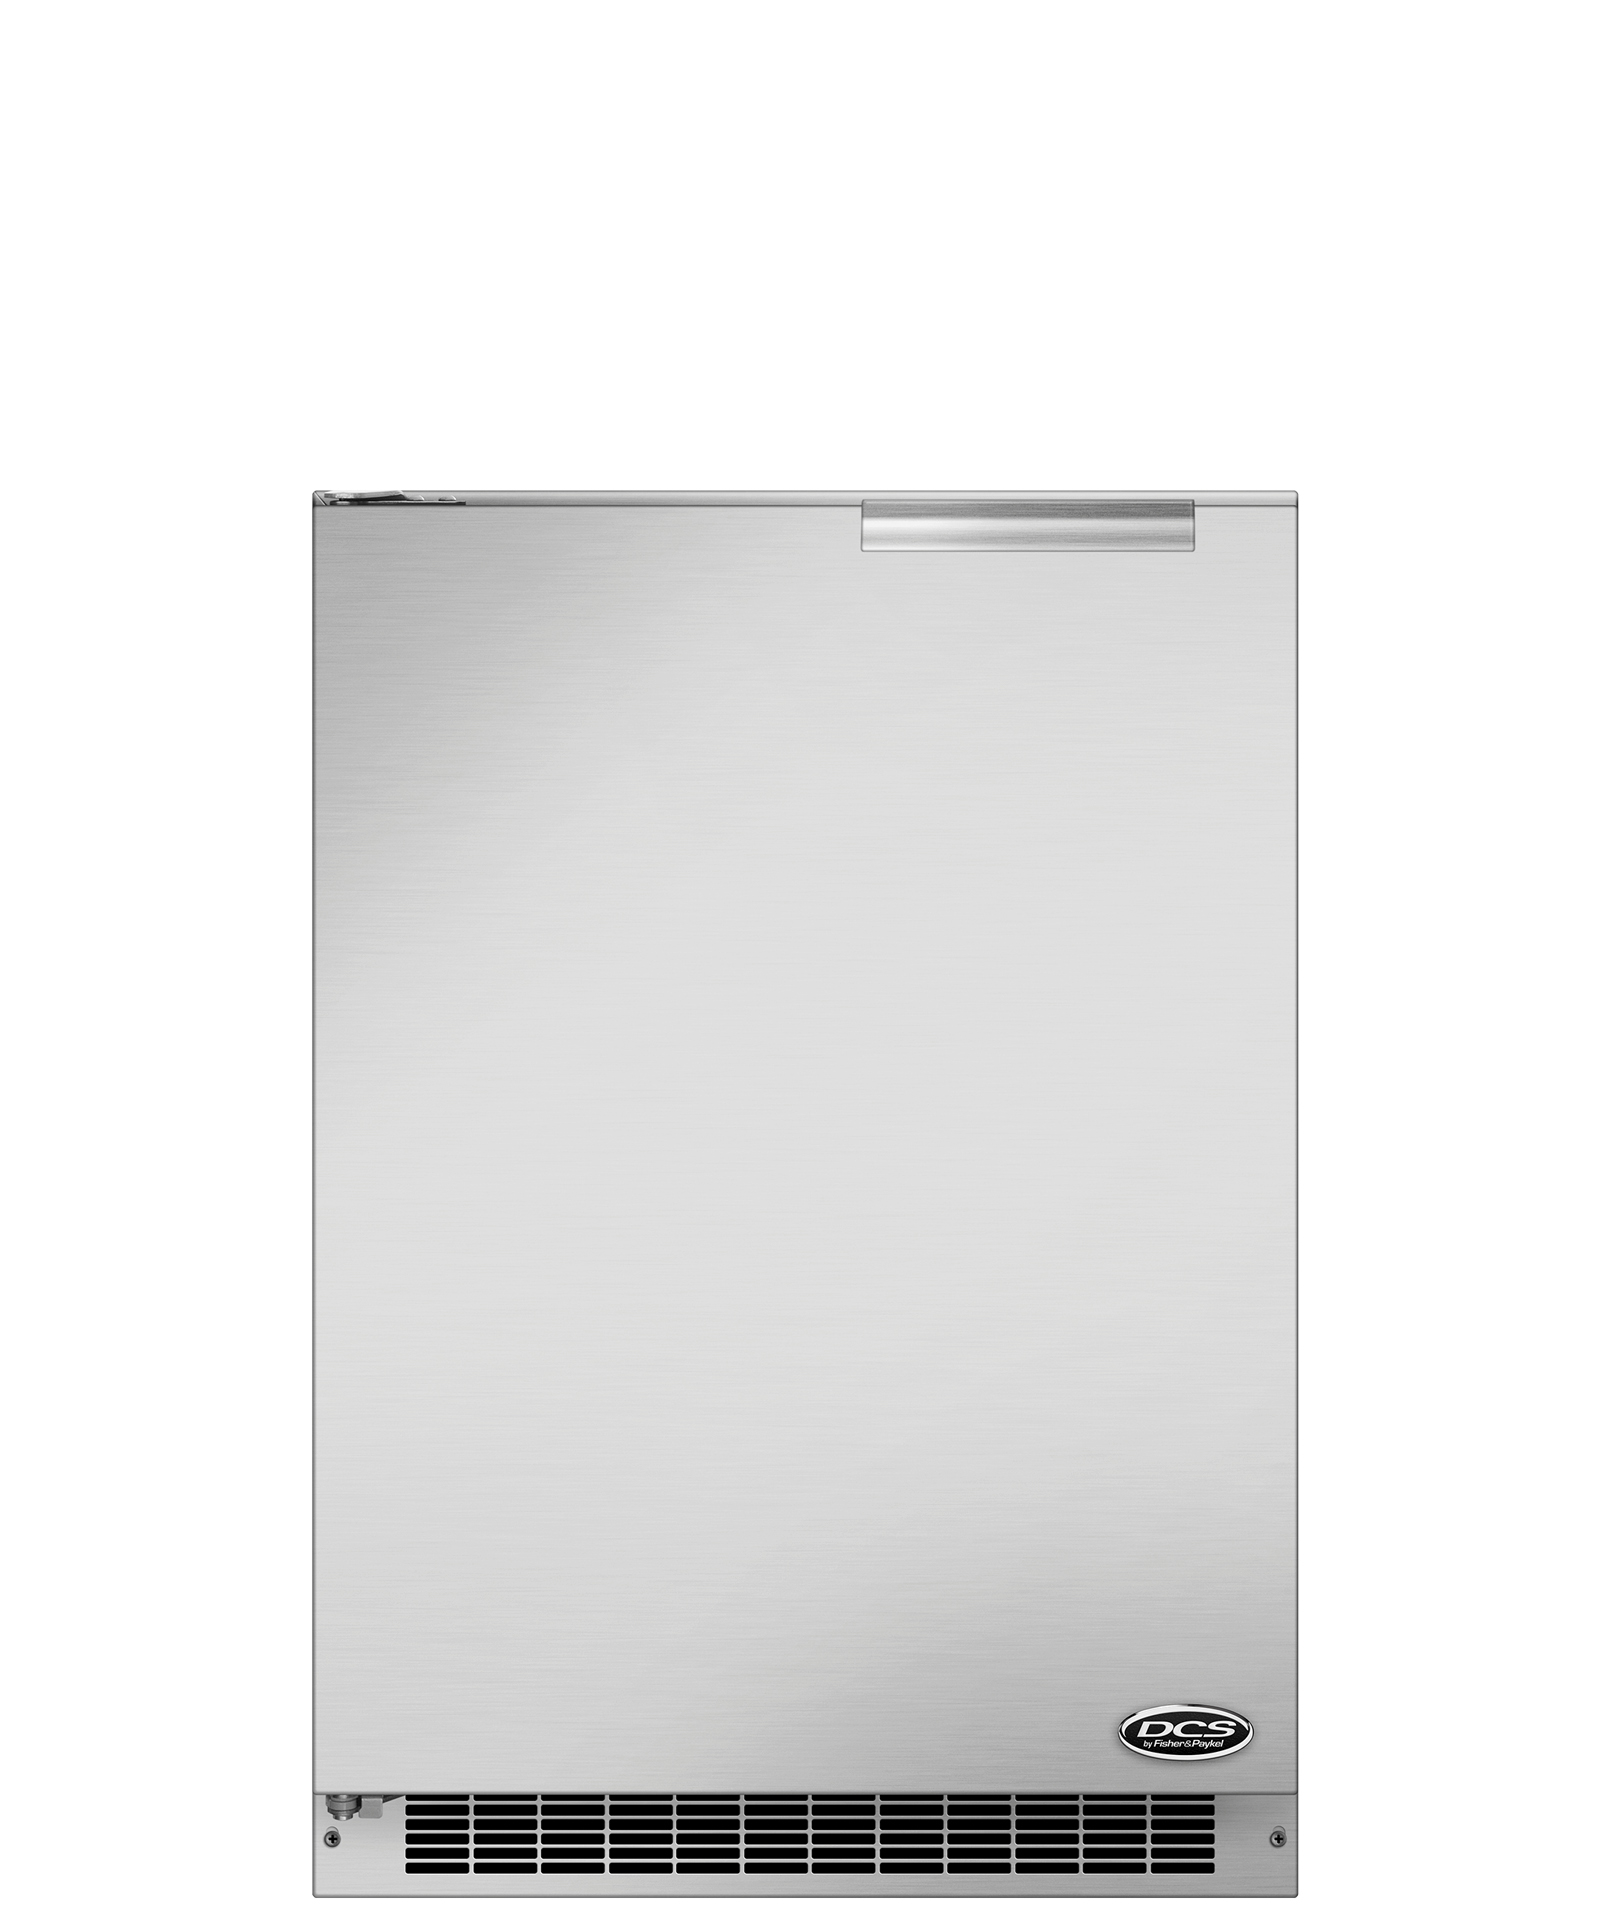 "DCS 24"" Outdoor Refrigerator, Left Hinge"